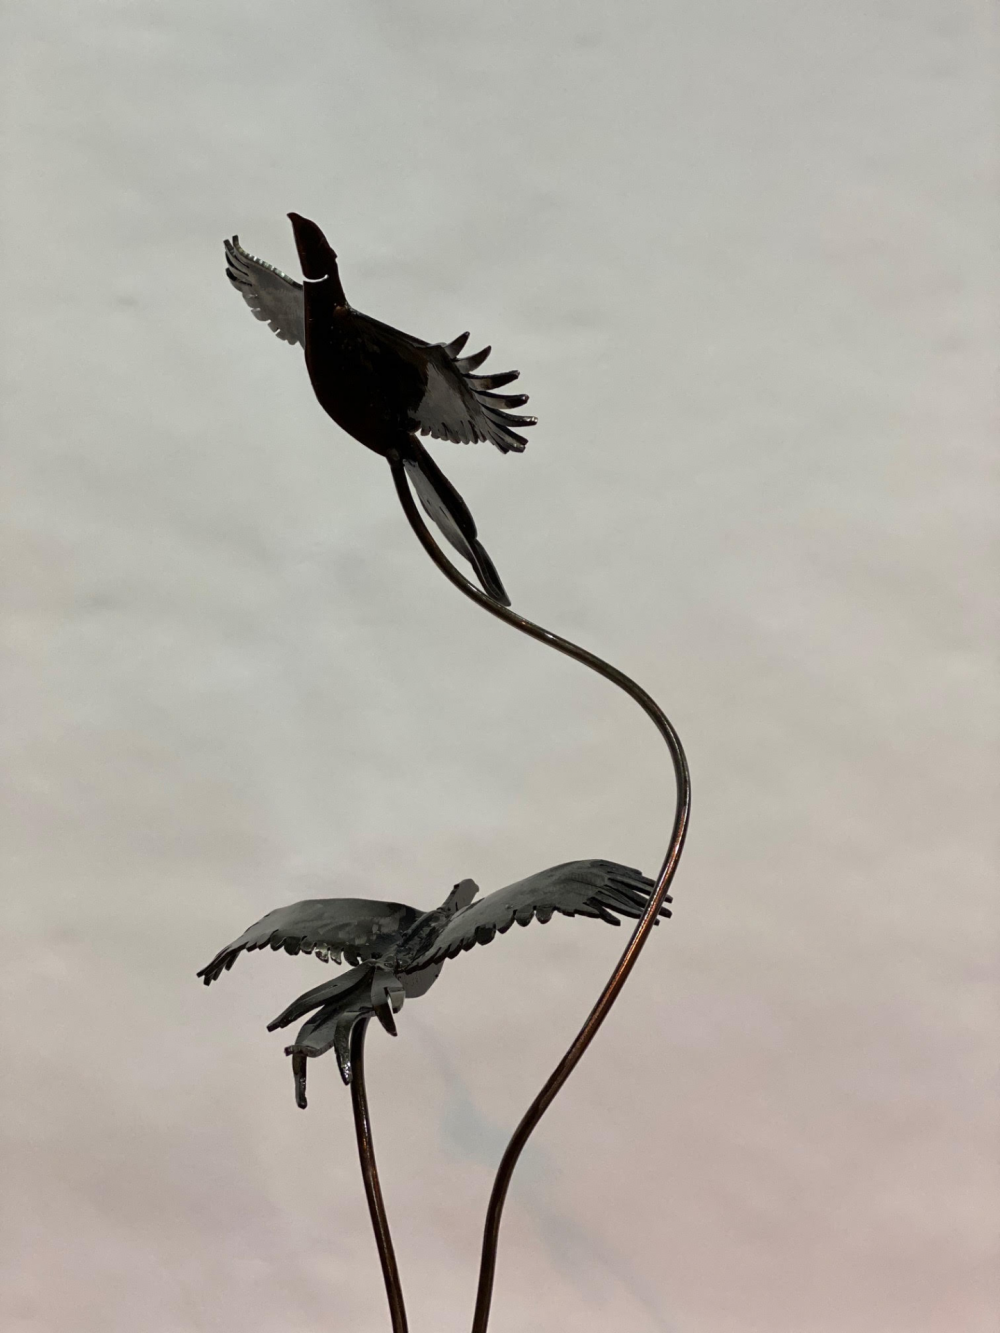 Two Birds Flying With Cloudy Background